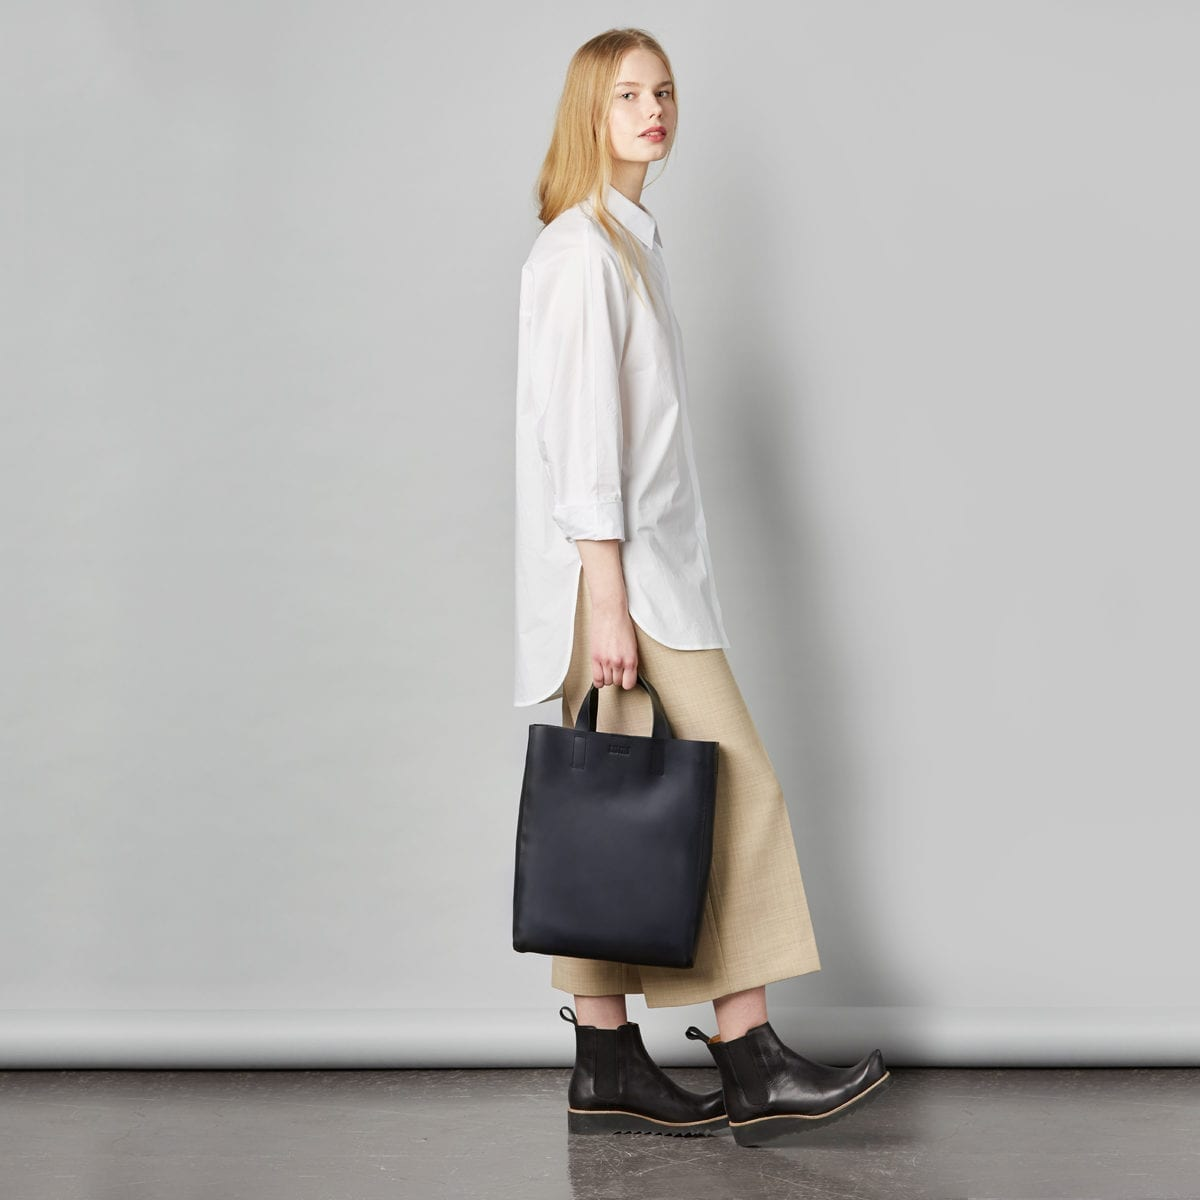 LUMI Ritva Open Tote in classic black. This minimalistic tote bag ticks all the boxes for a perfect day bag, for the office and around town